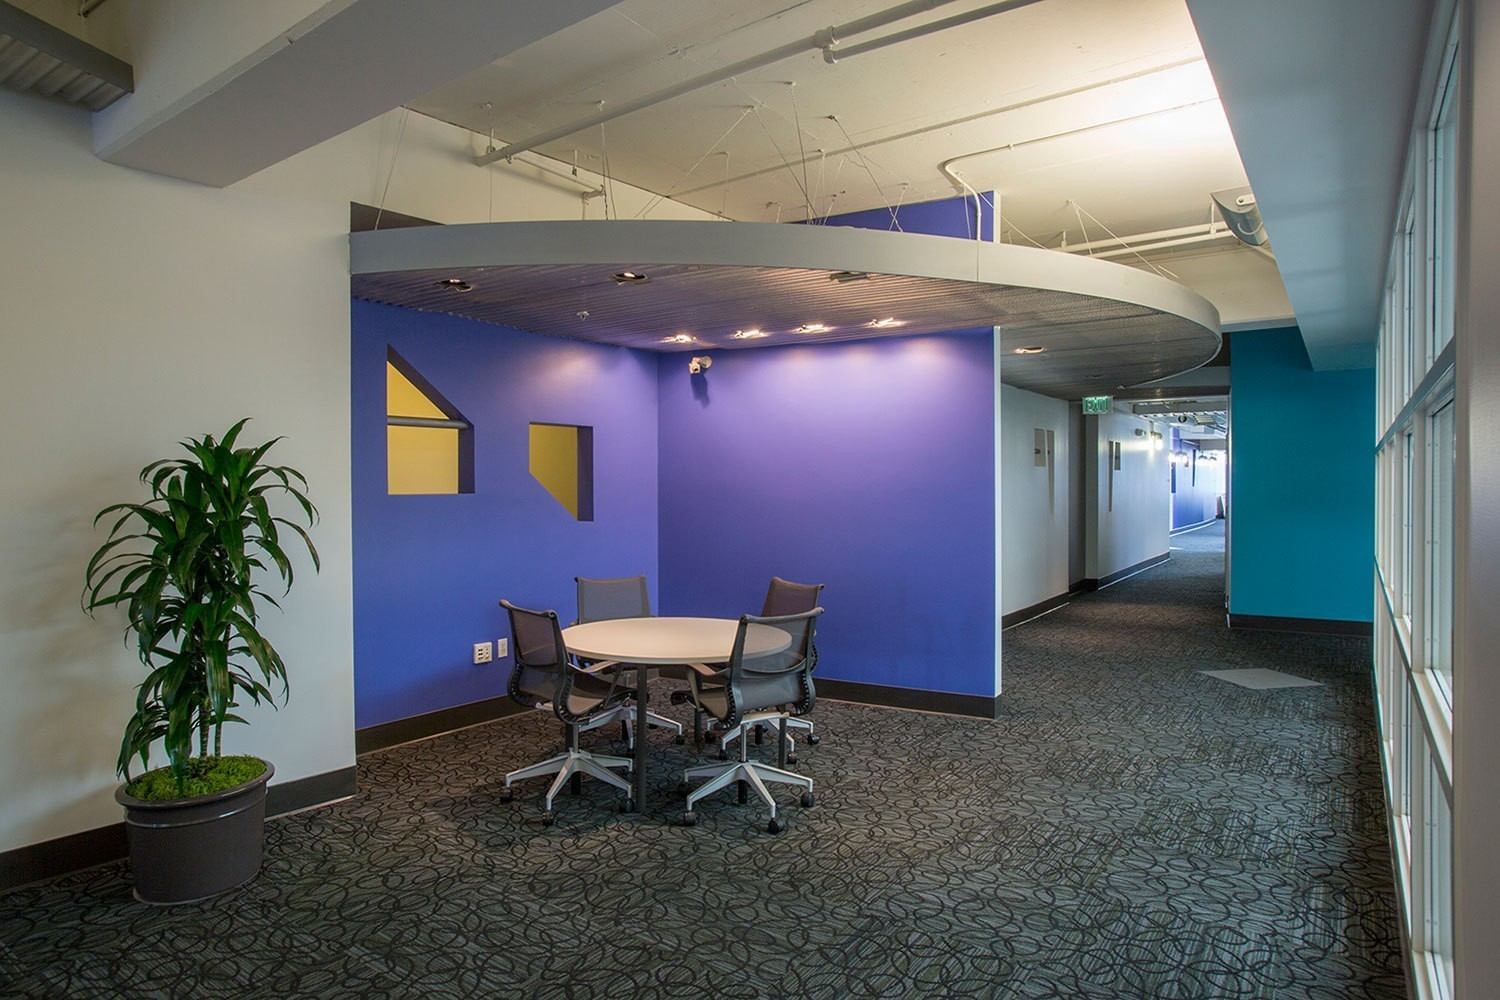 iheart-media-office-studio-renovation-sanfrancisco-collaborative-space